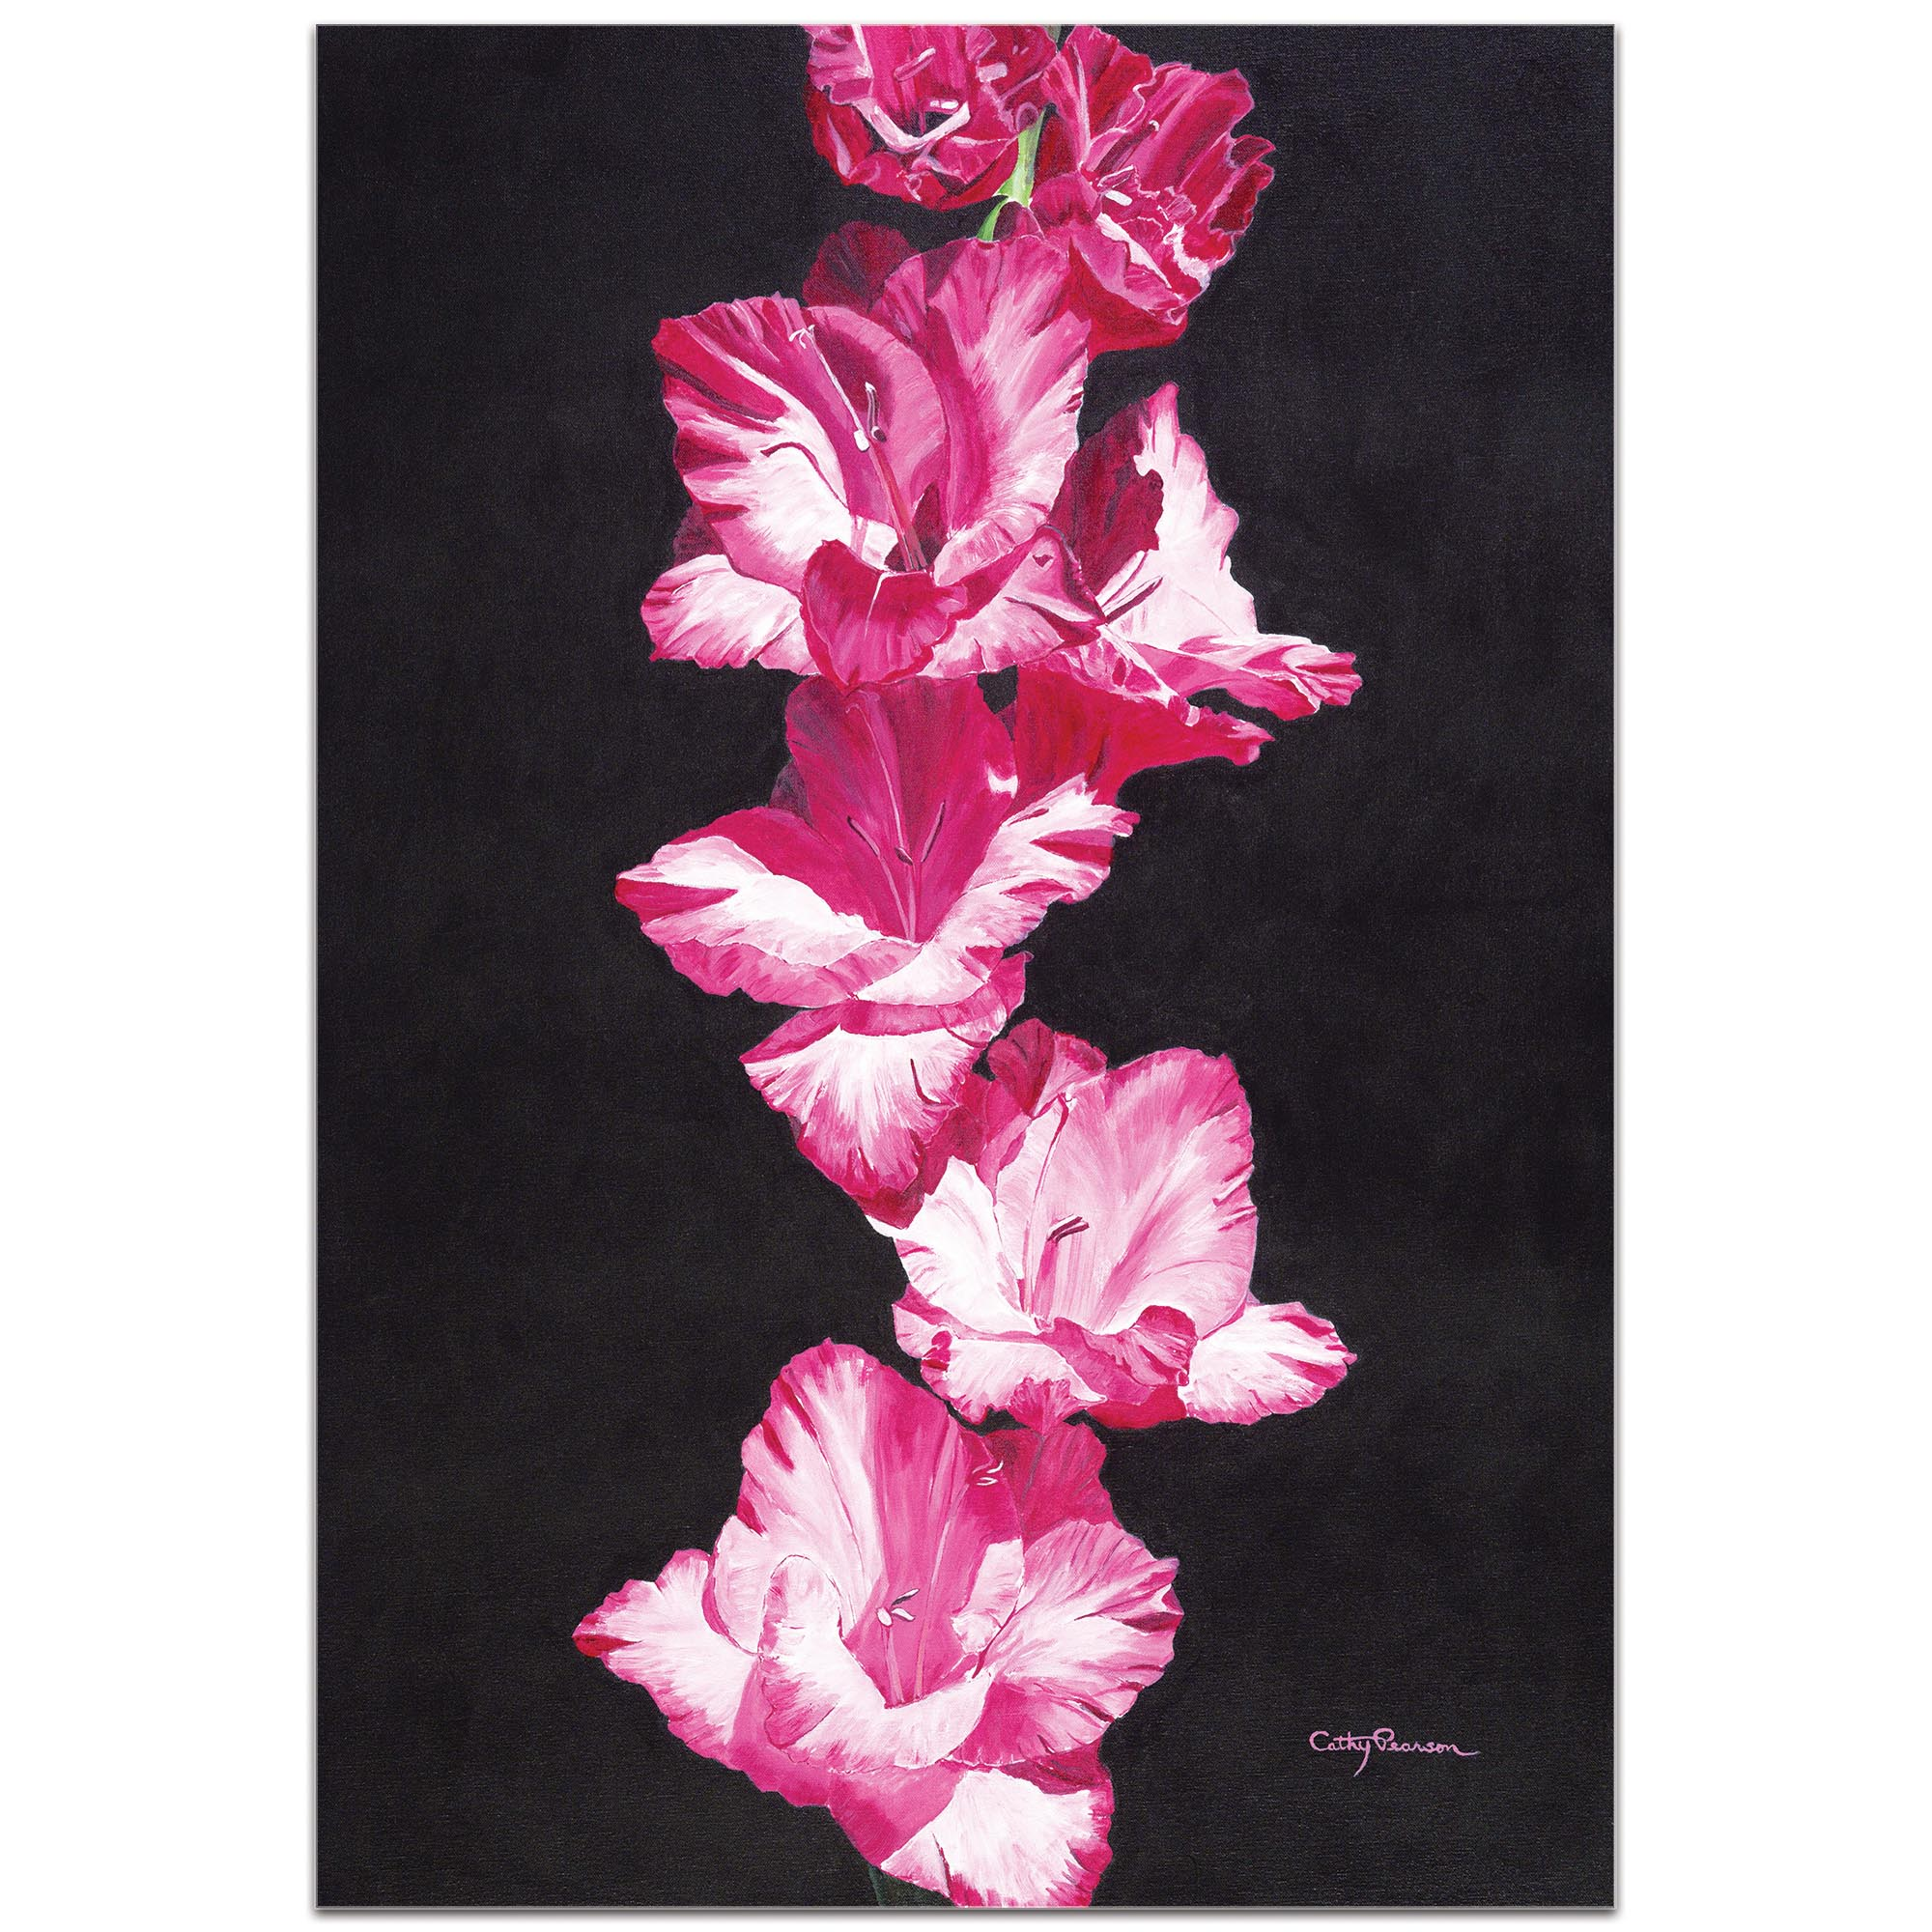 Traditional Wall Art 'Bright Pink Glads' - Floral Decor on Metal or Plexiglass - Image 2